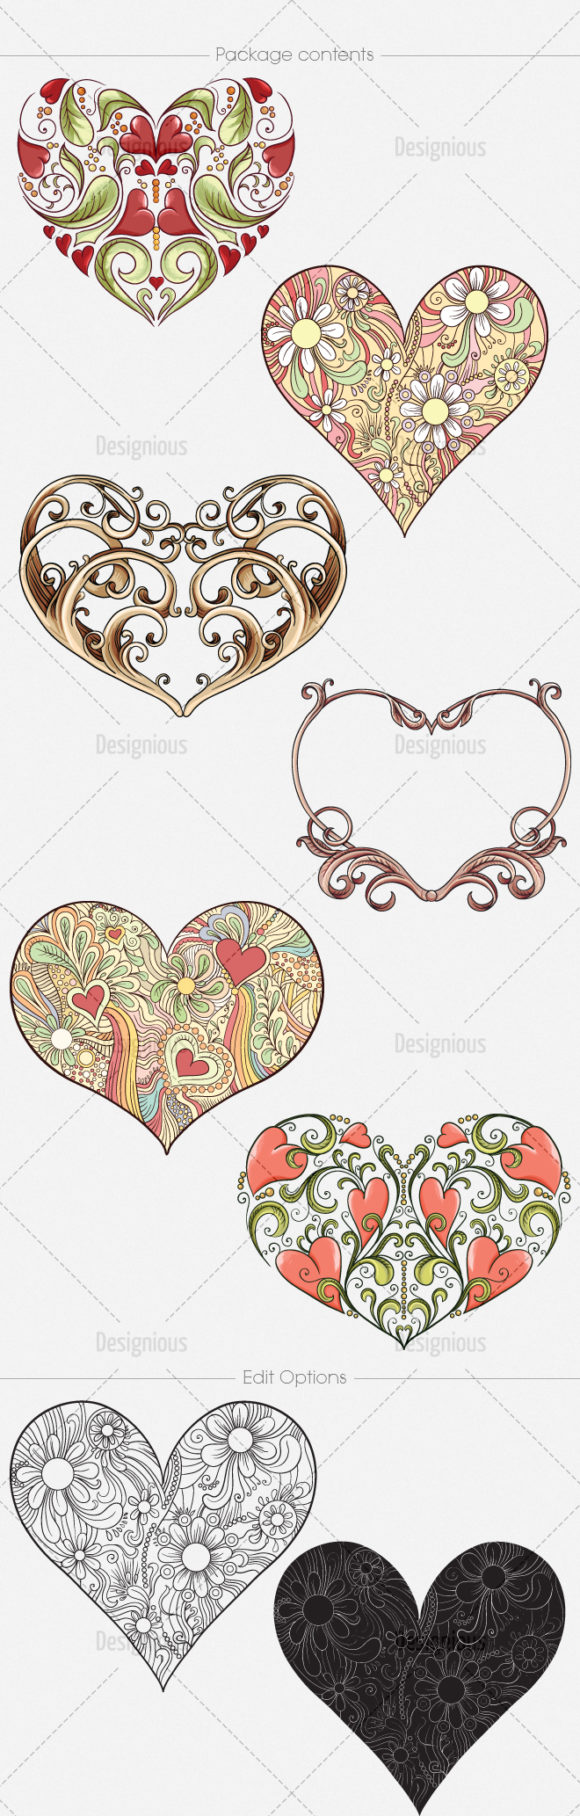 Hearts Vector Pack 5 6